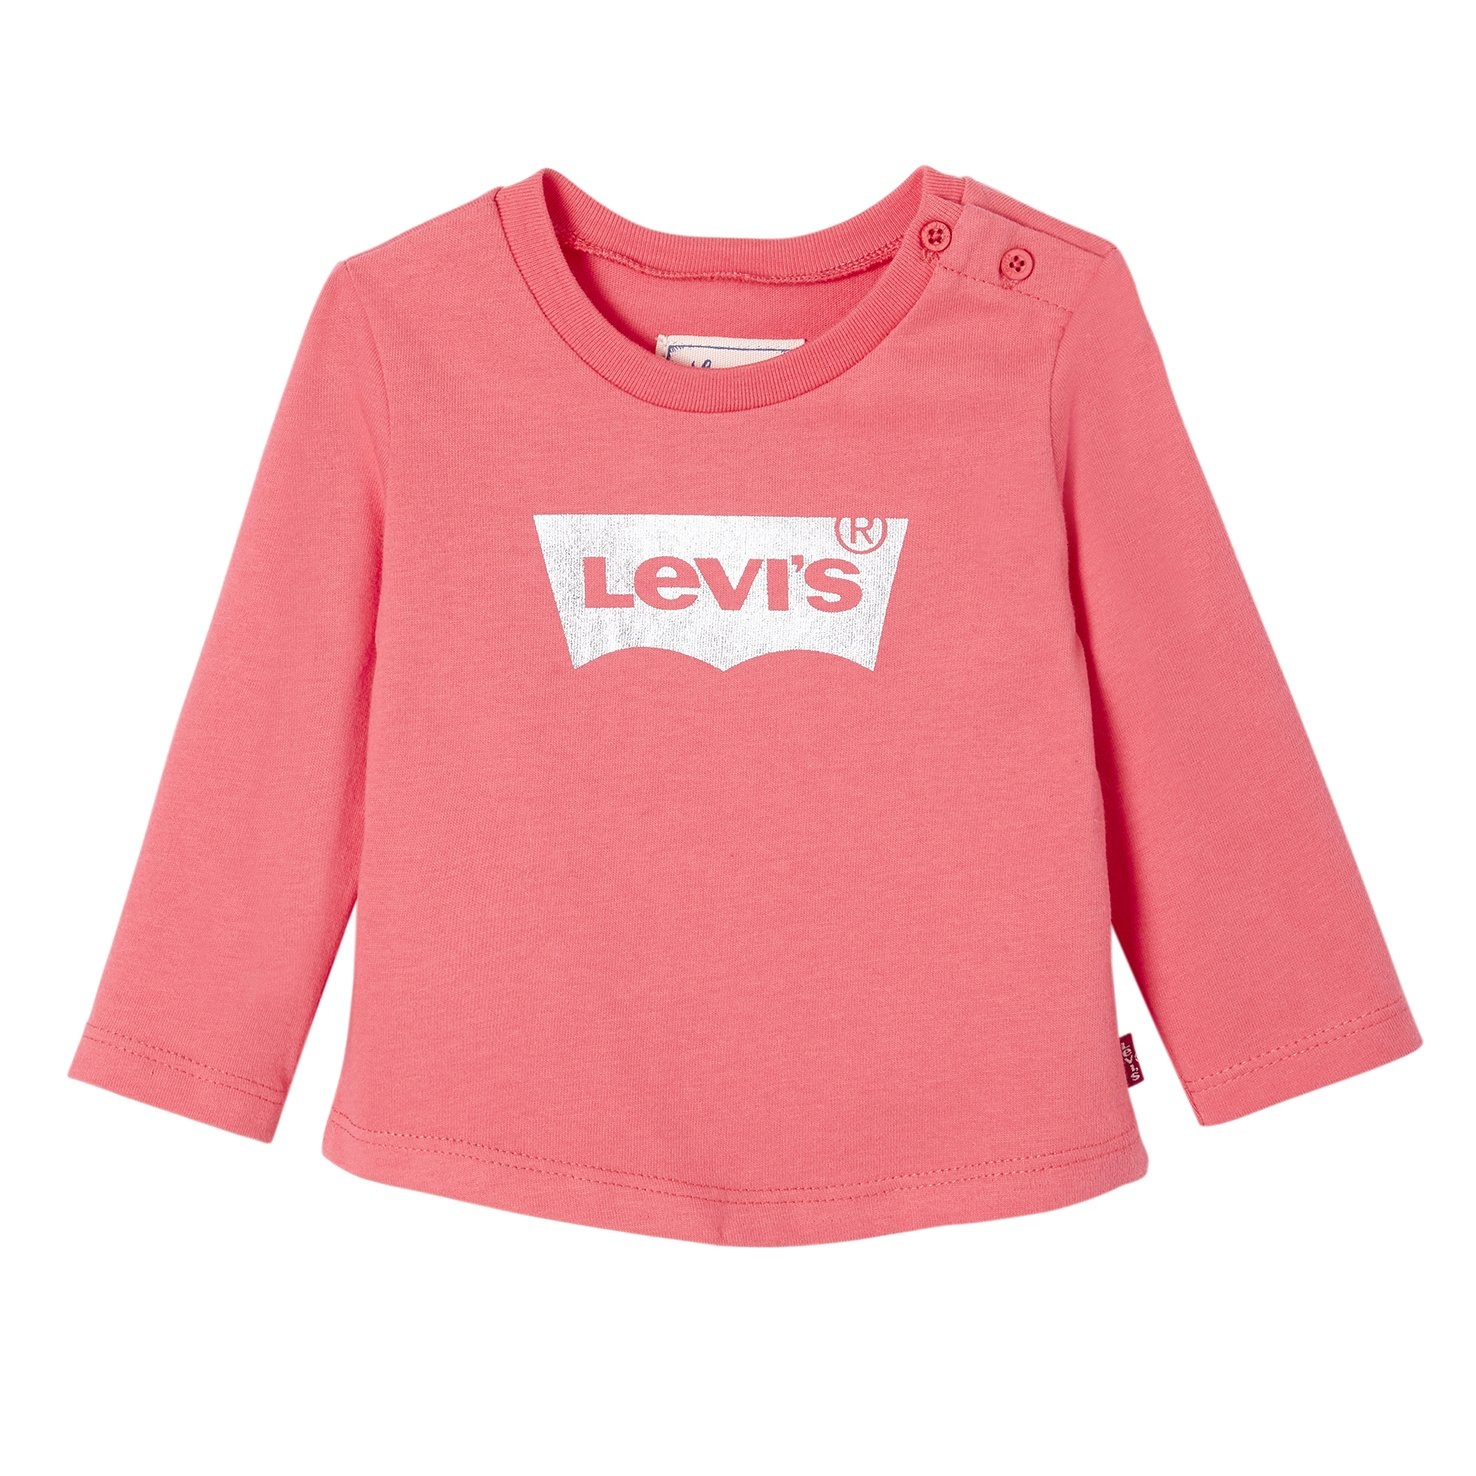 Levi's Kids Baby Girls' T-Shirt Levi's Kids TEE-SHIRT